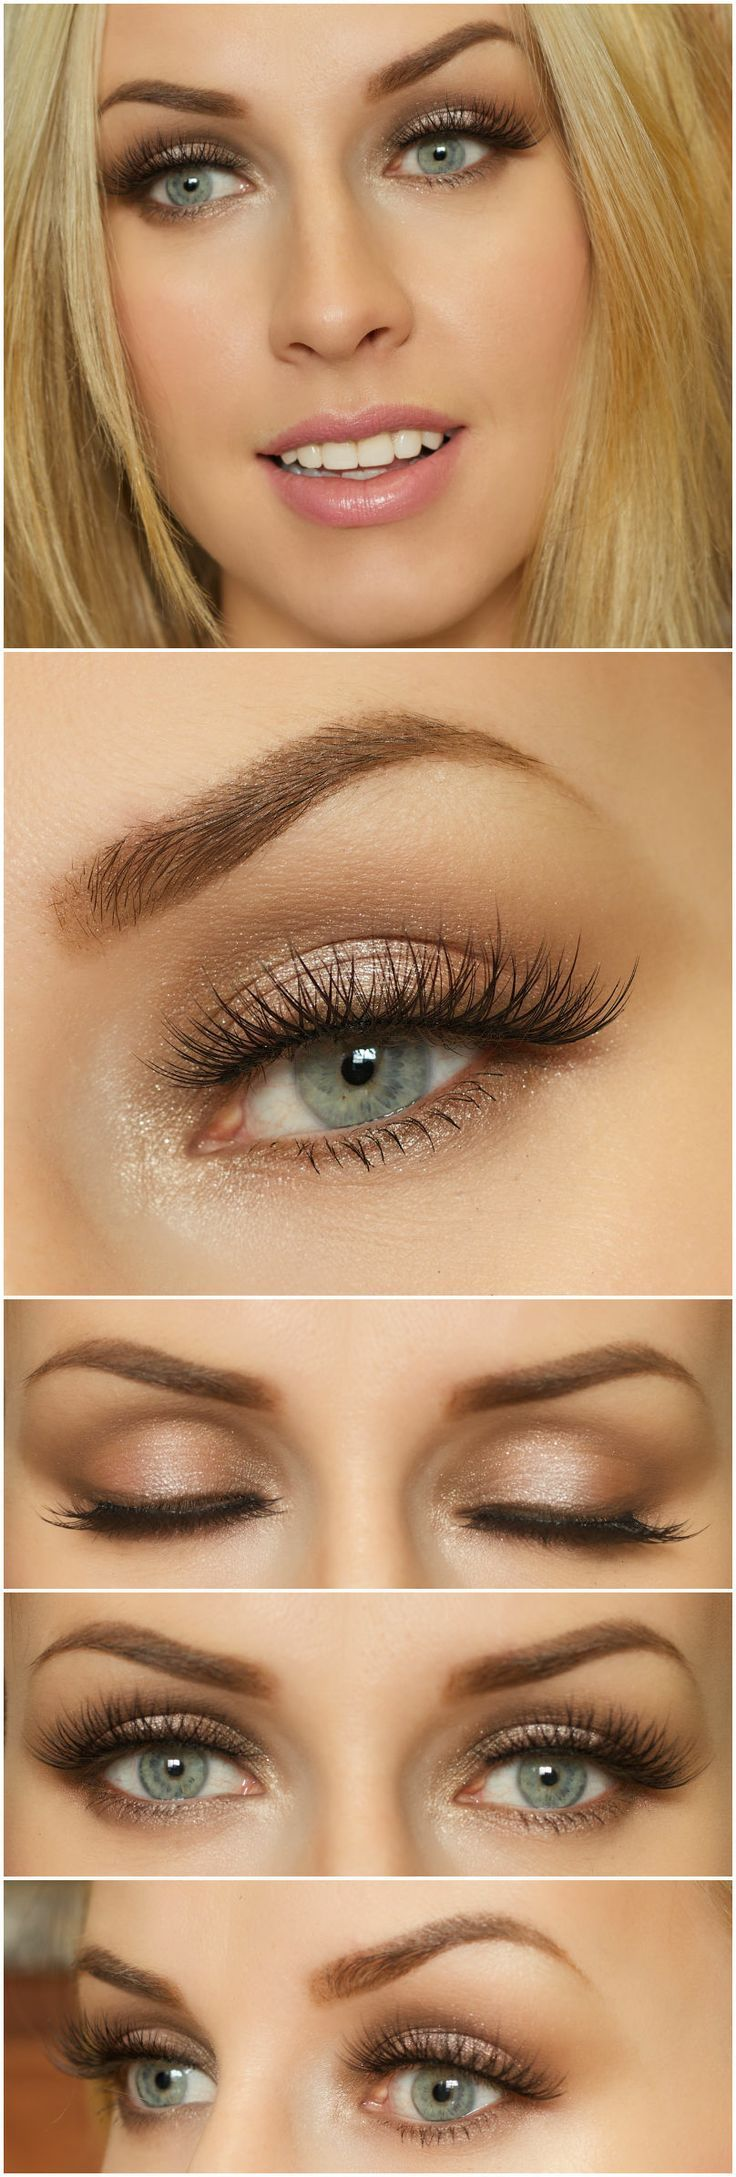 Create a Perfect Metallic Smoky Eye in 3 Minutes - Trend2Wear